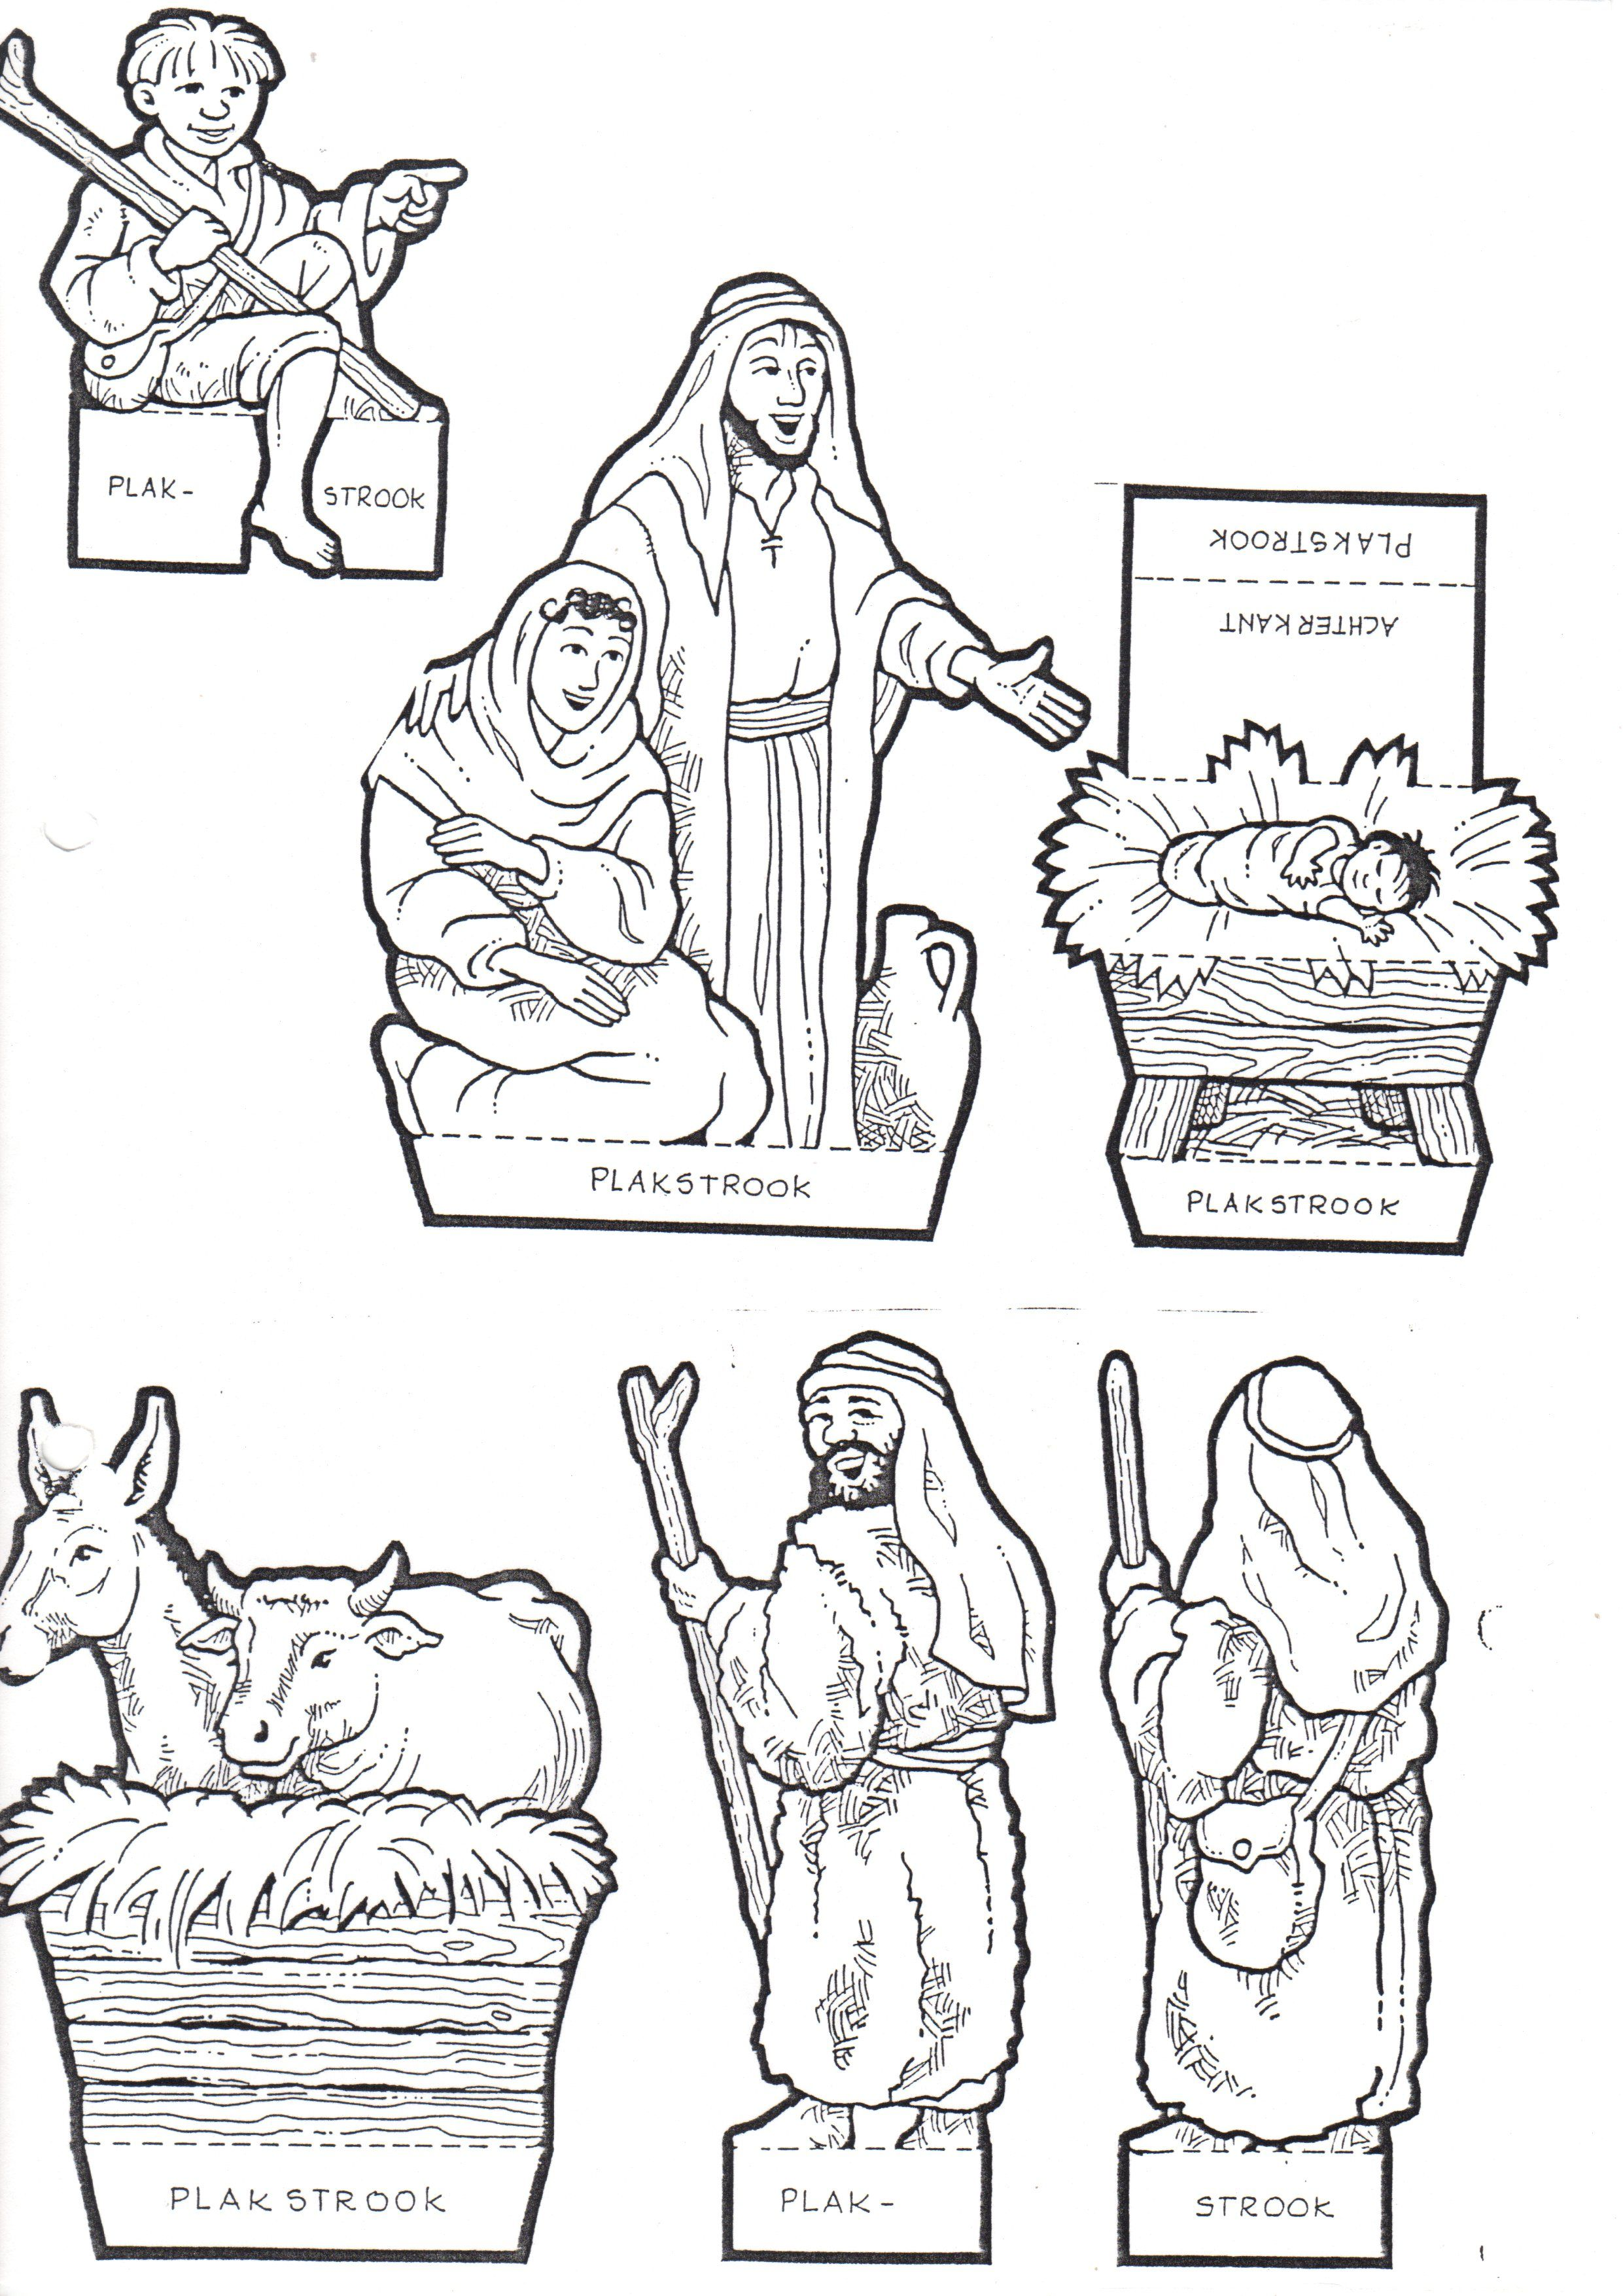 Pin by Heather McCary on Bible: NT Jesus Birth | Bible ...